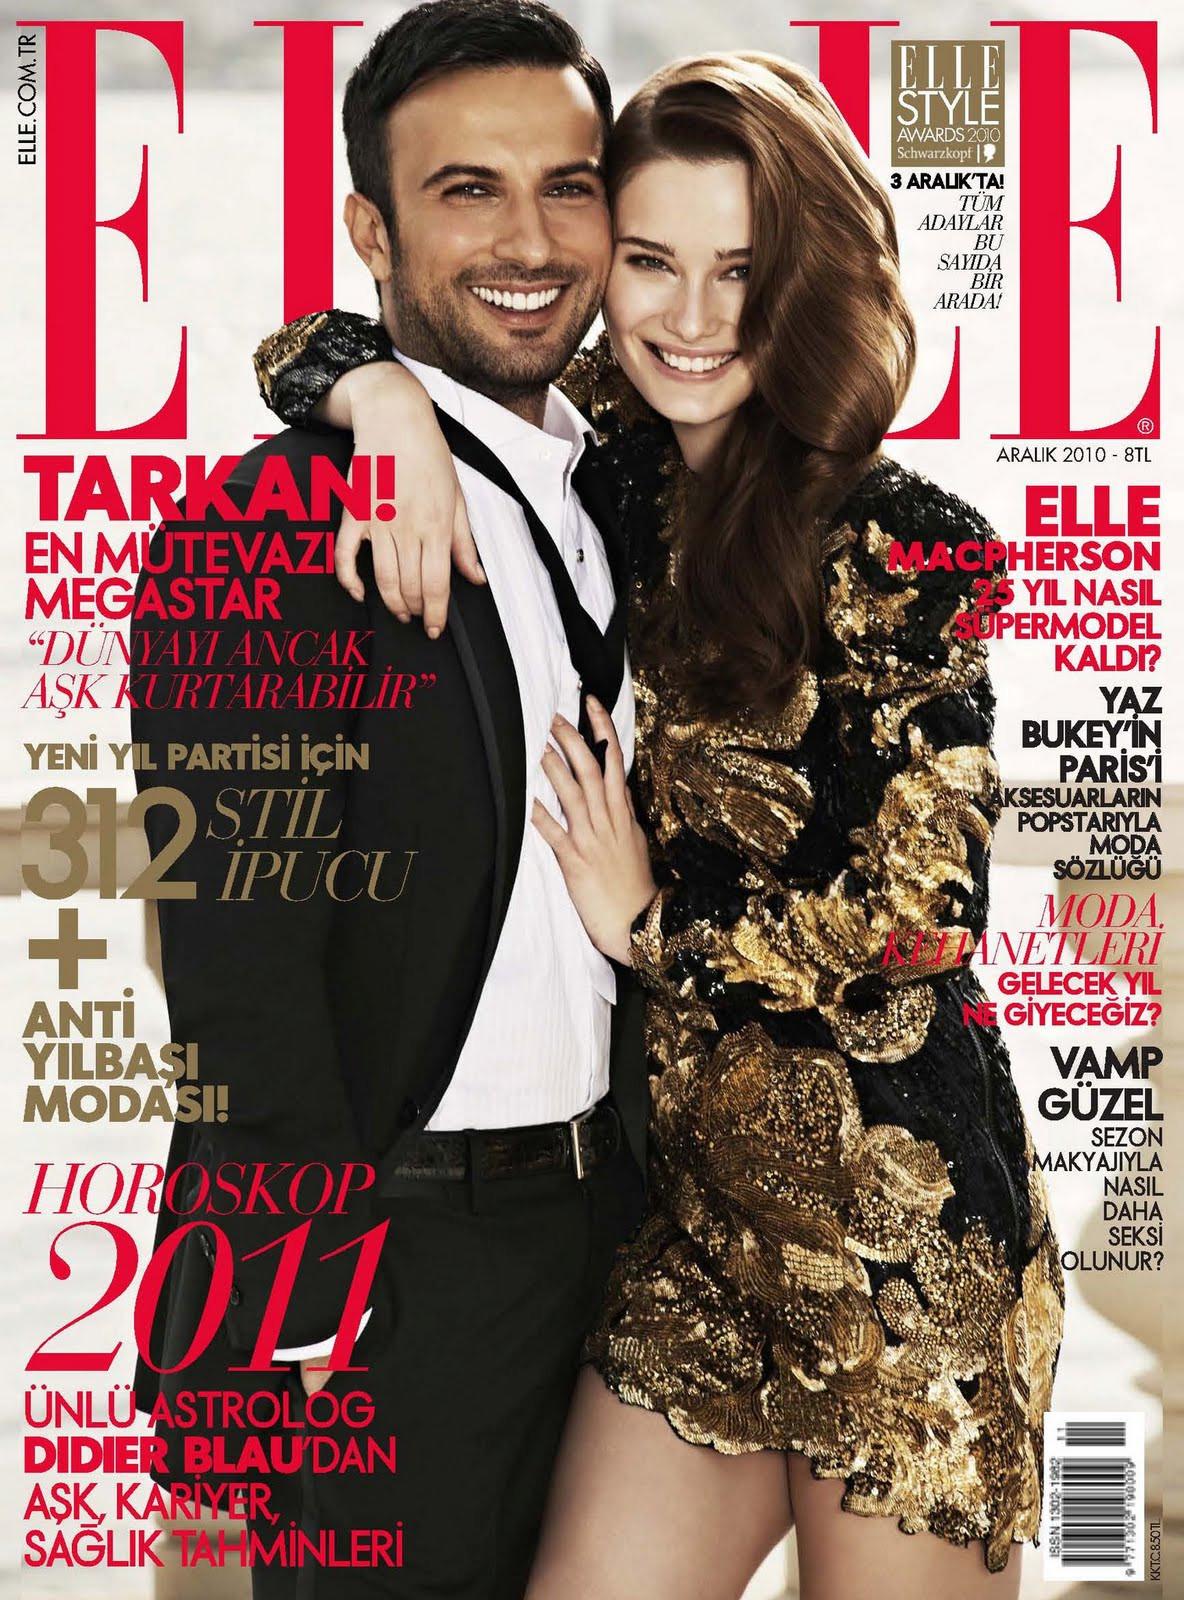 Tarkan photo #376728